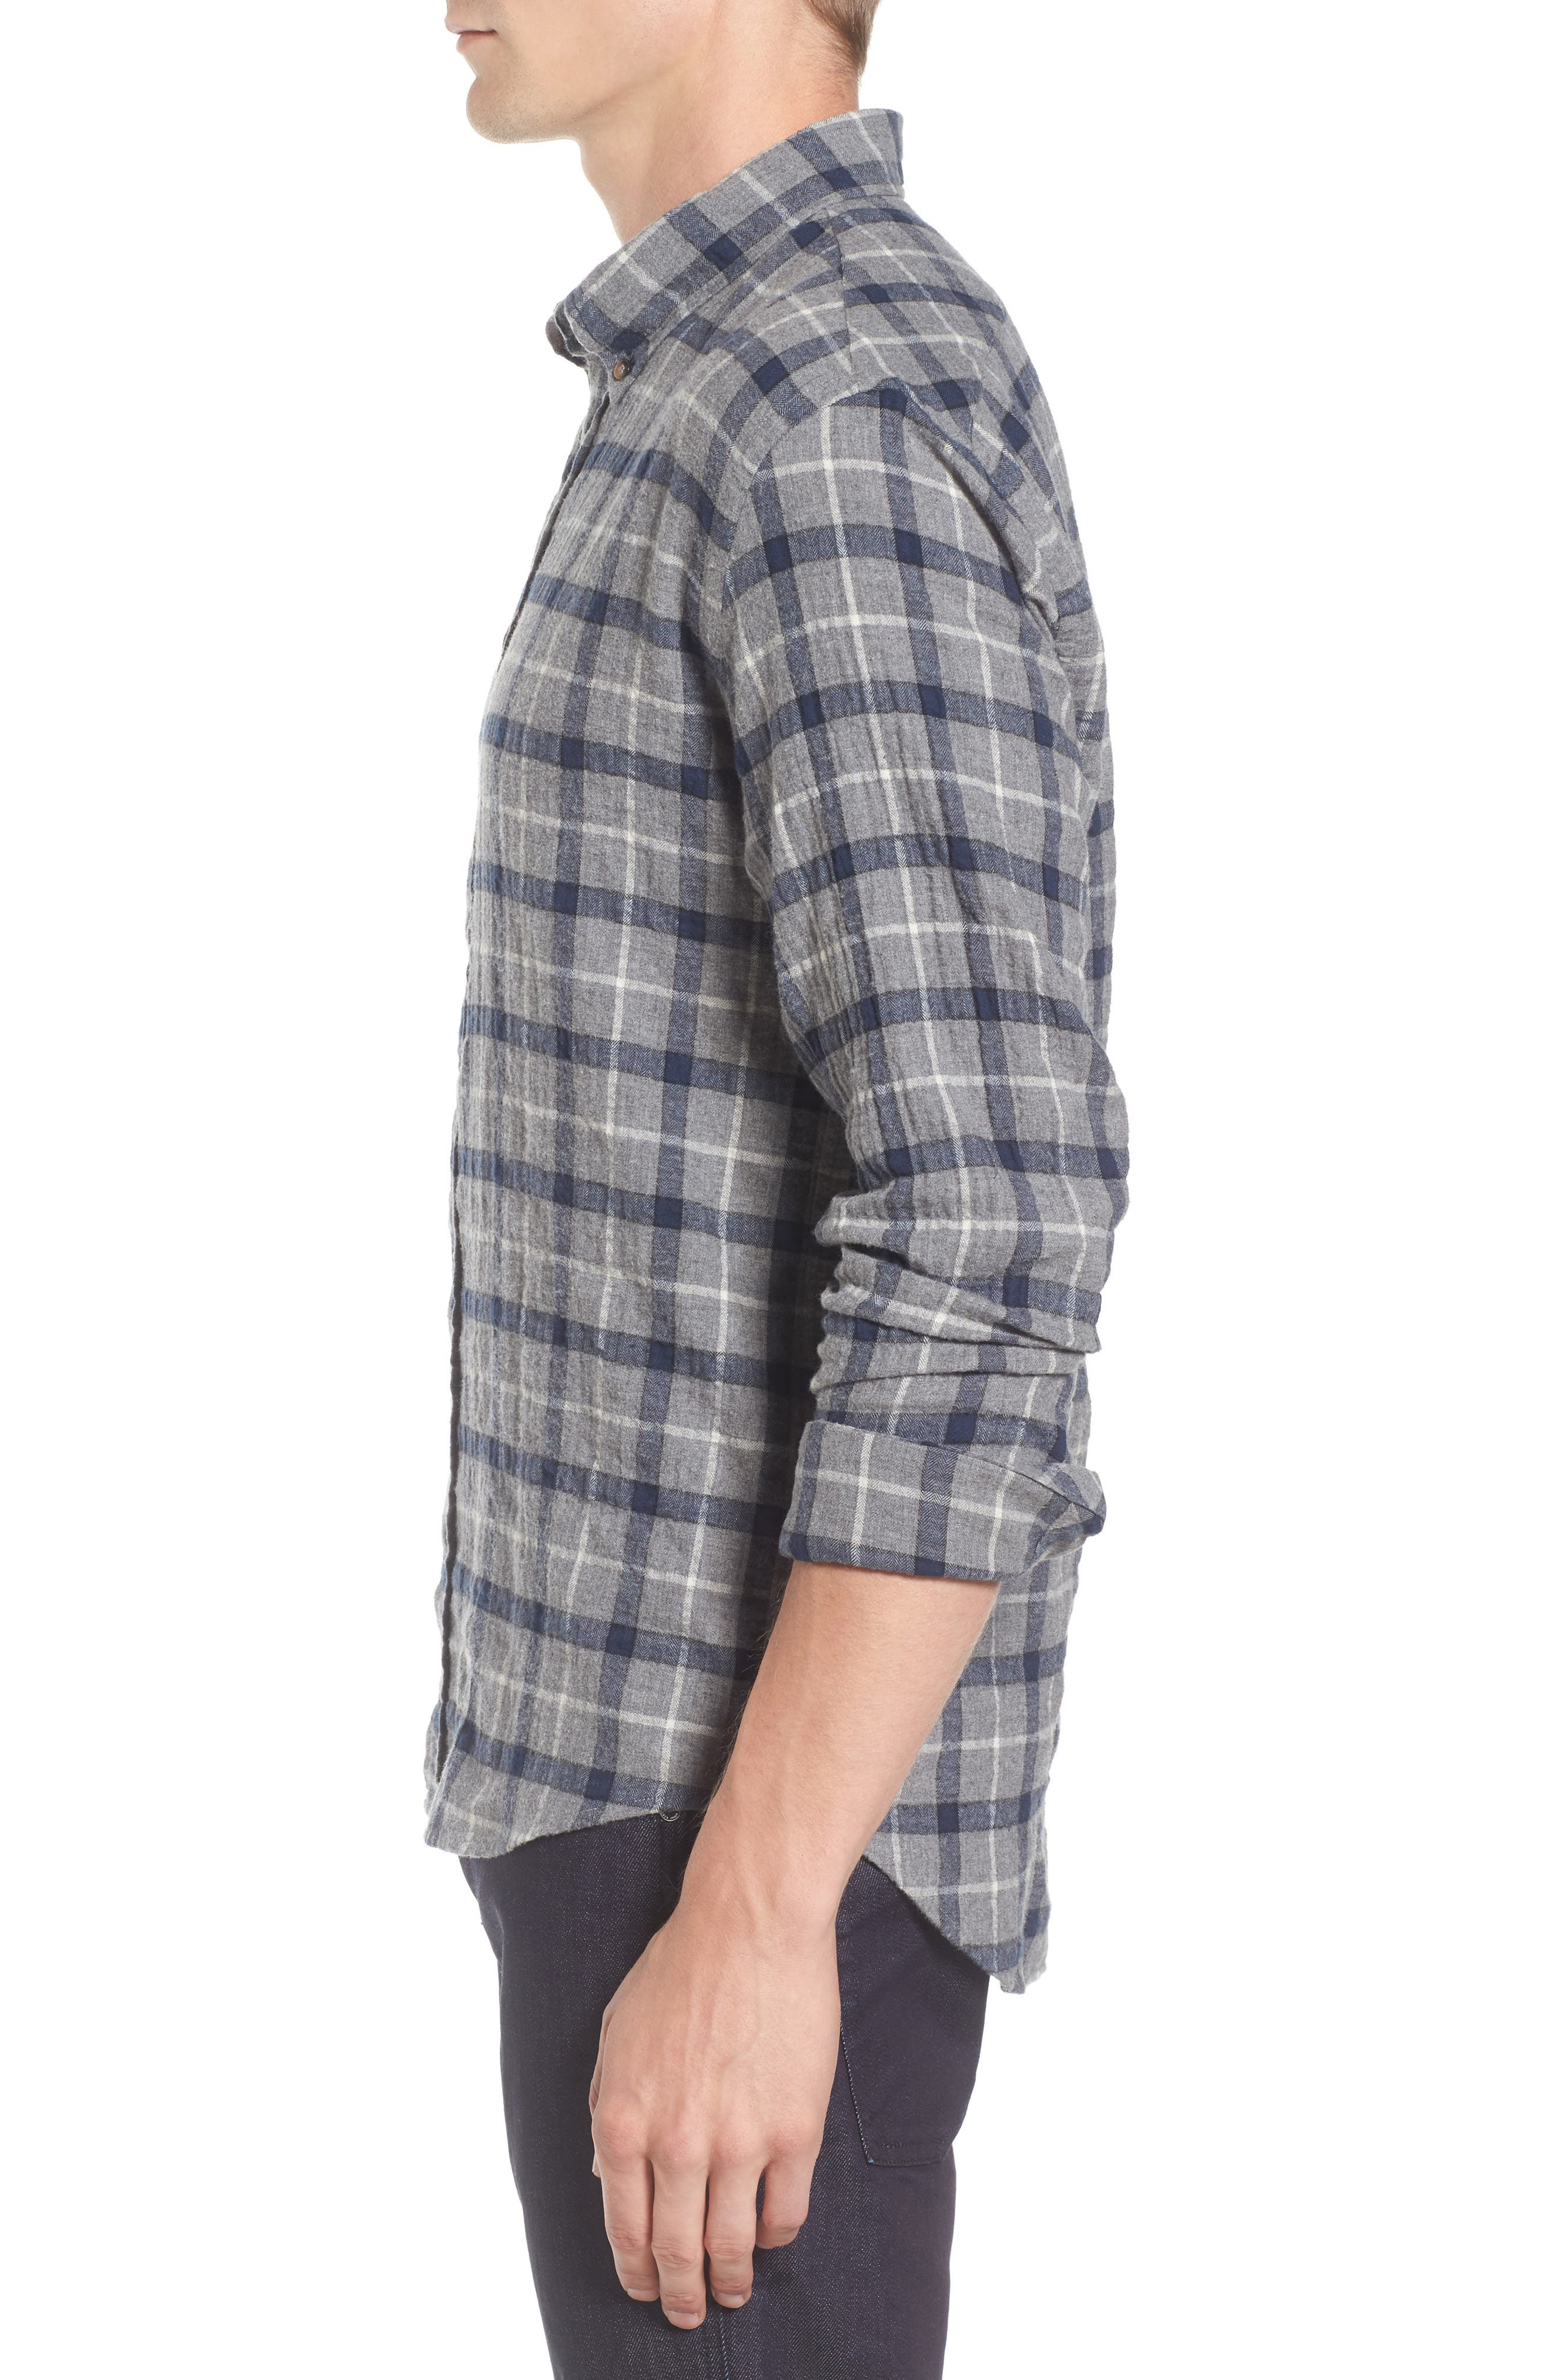 Murphy Slim Fit Plaid Sport Shirt,                             Alternate thumbnail 3, color,                             Grey/ Navy